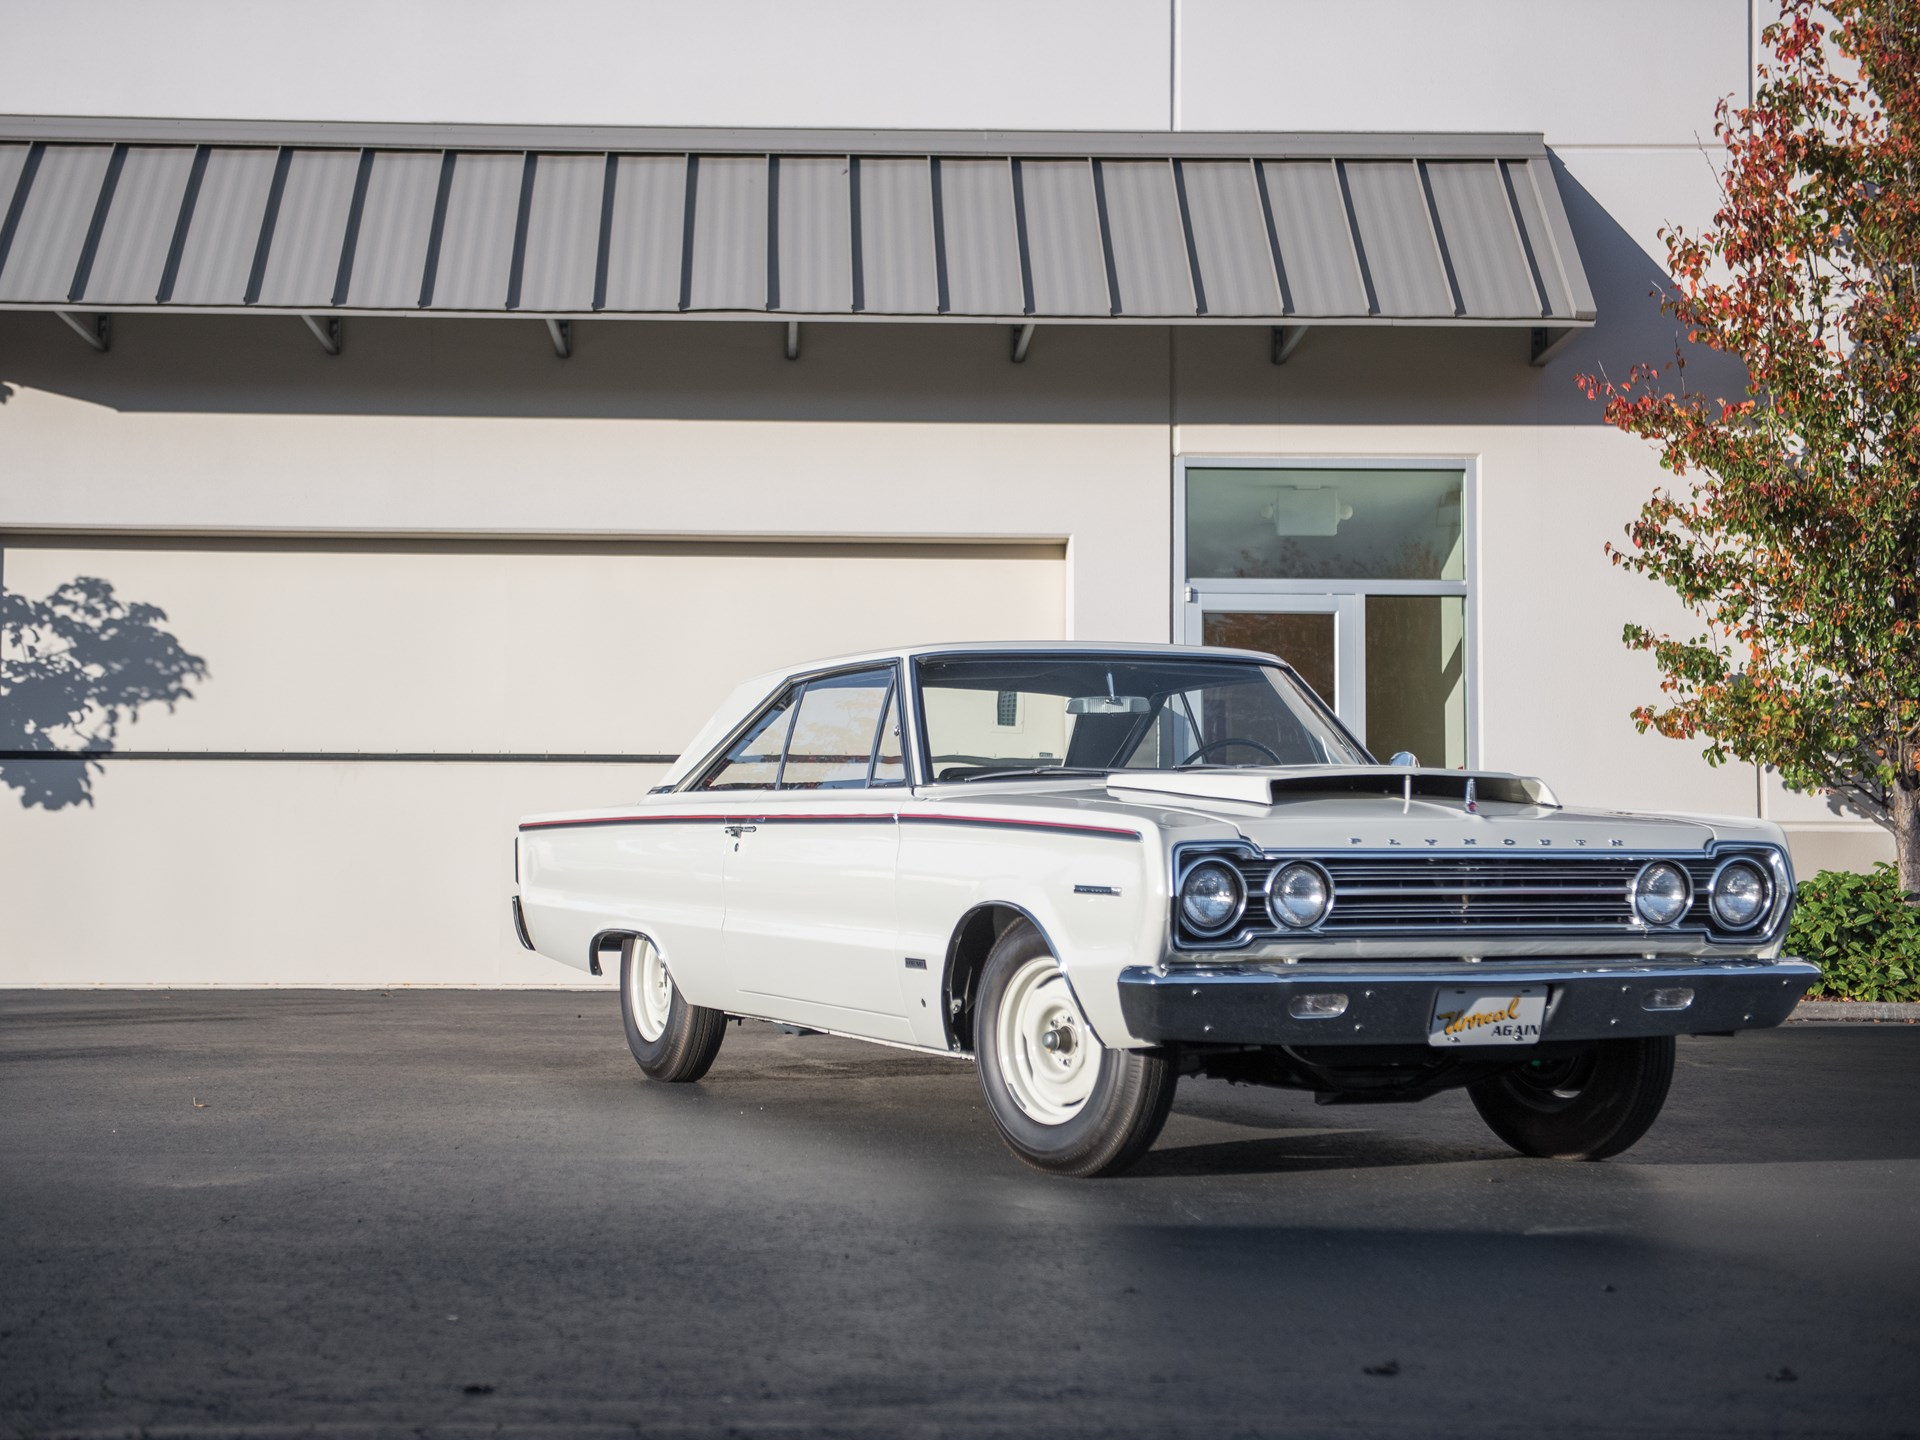 1967 Plymouth Belvedere II Super Stock Hemi